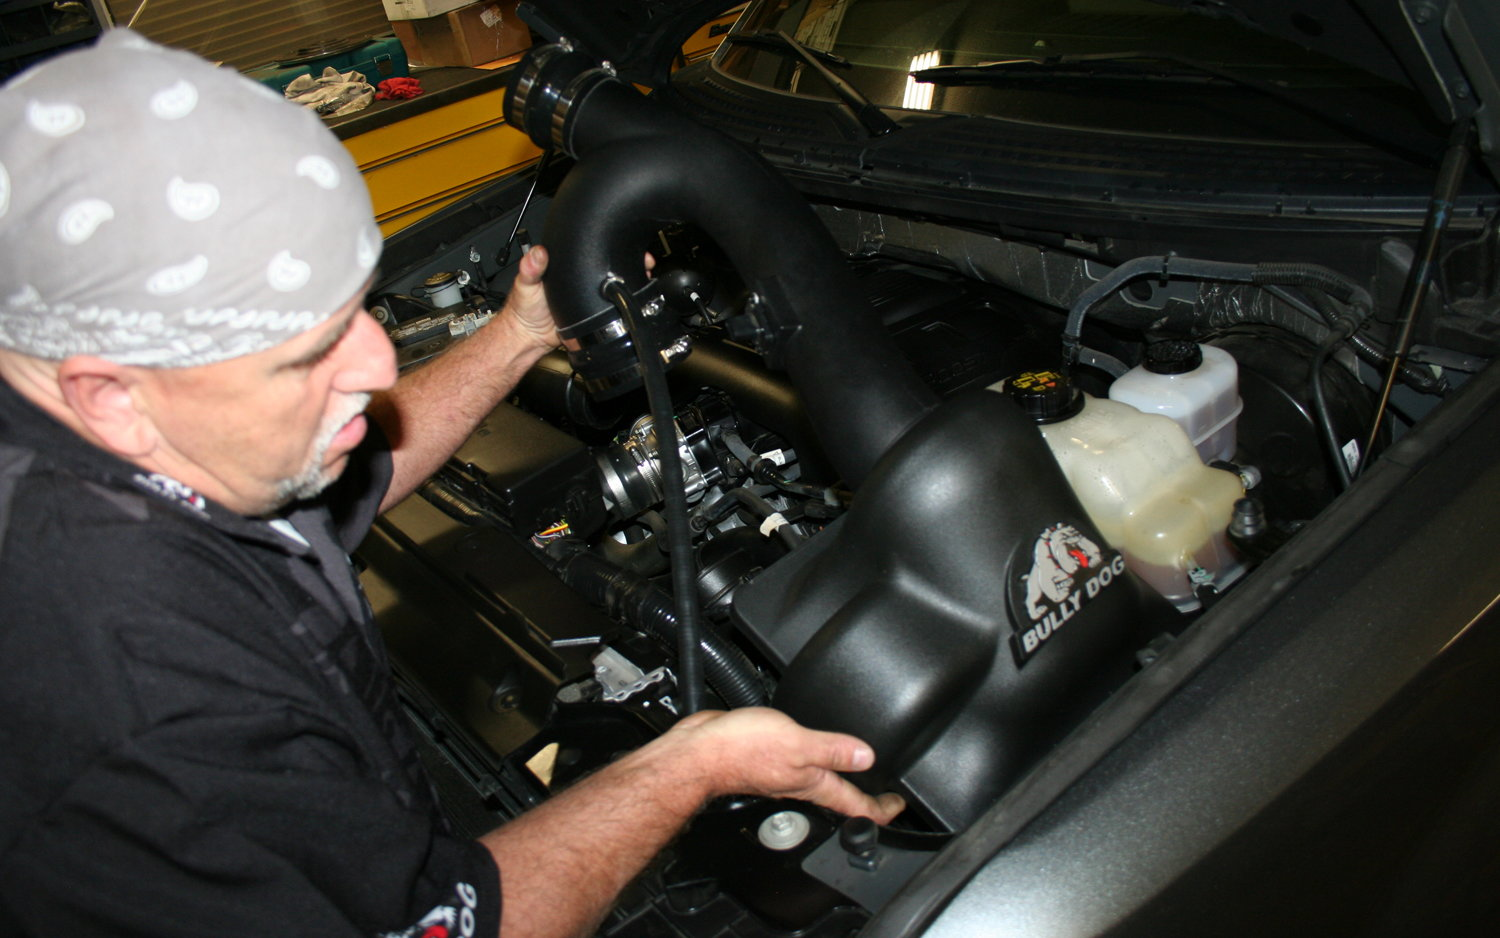 Removing the air cleaner assembly